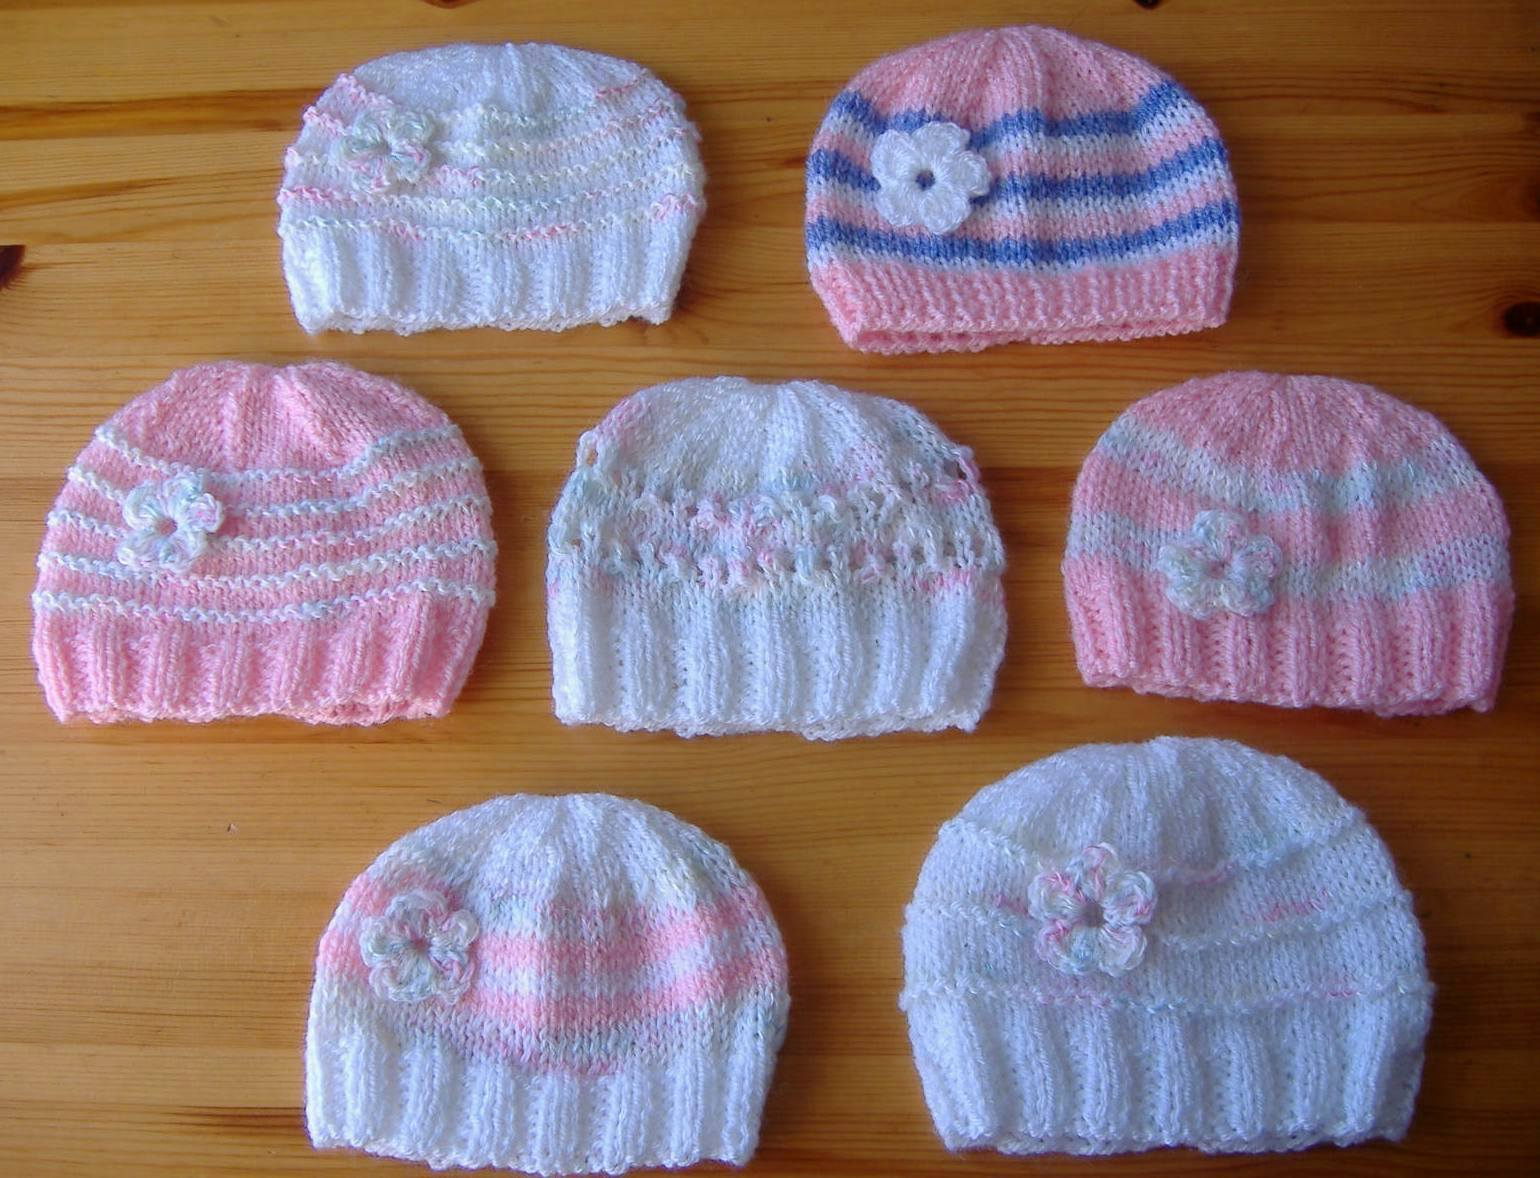 Easy Knitting Patterns For Toddler Hats : mariannas lazy daisy days: Knitted Baby Girl Hats